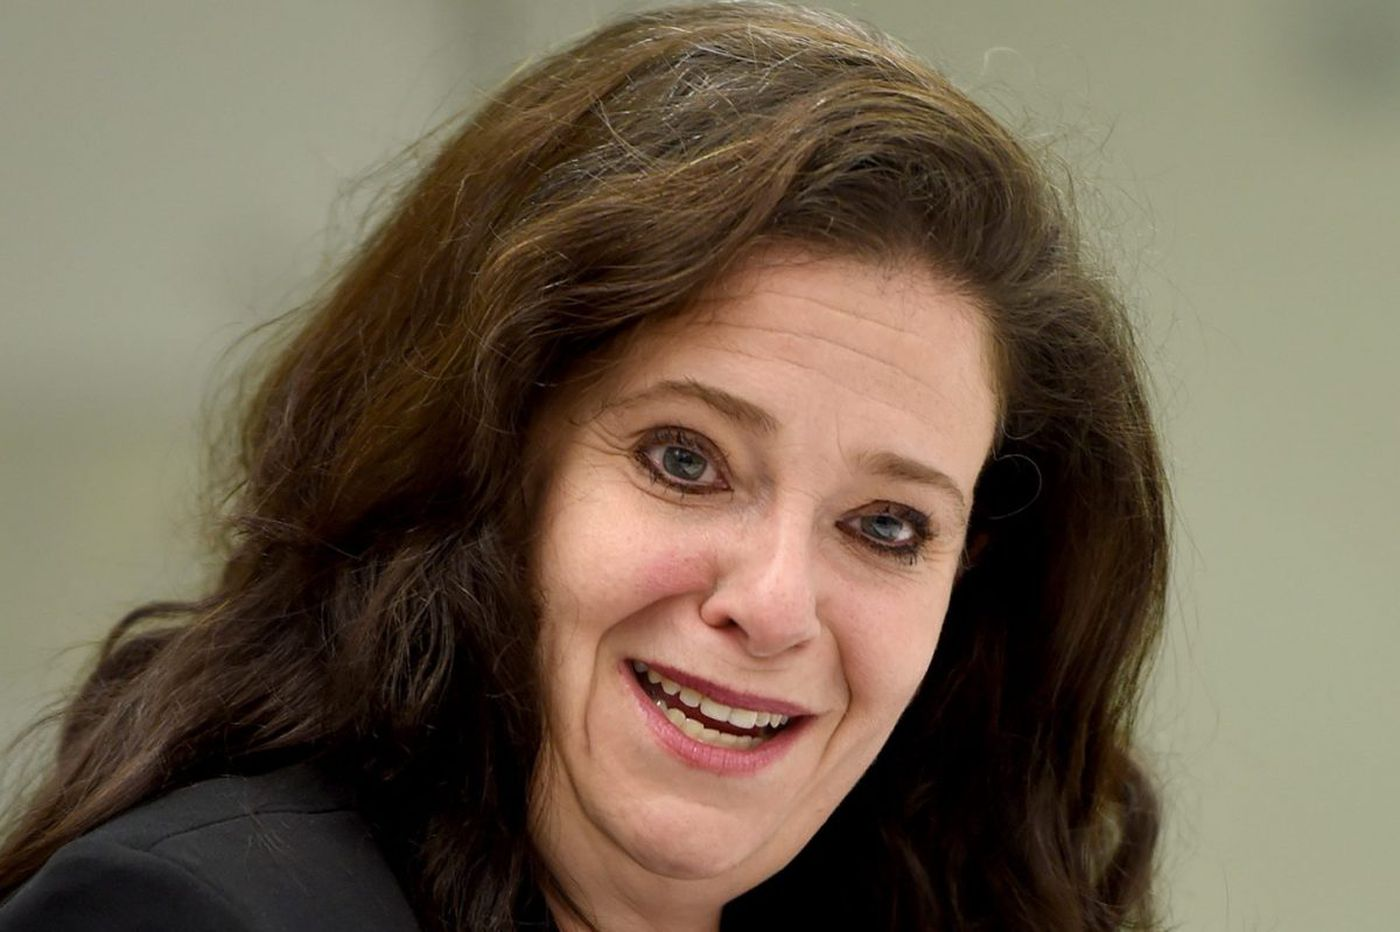 Beth Grossman has the energy, strong background, and skills to be Philly's next DA   Endorsement